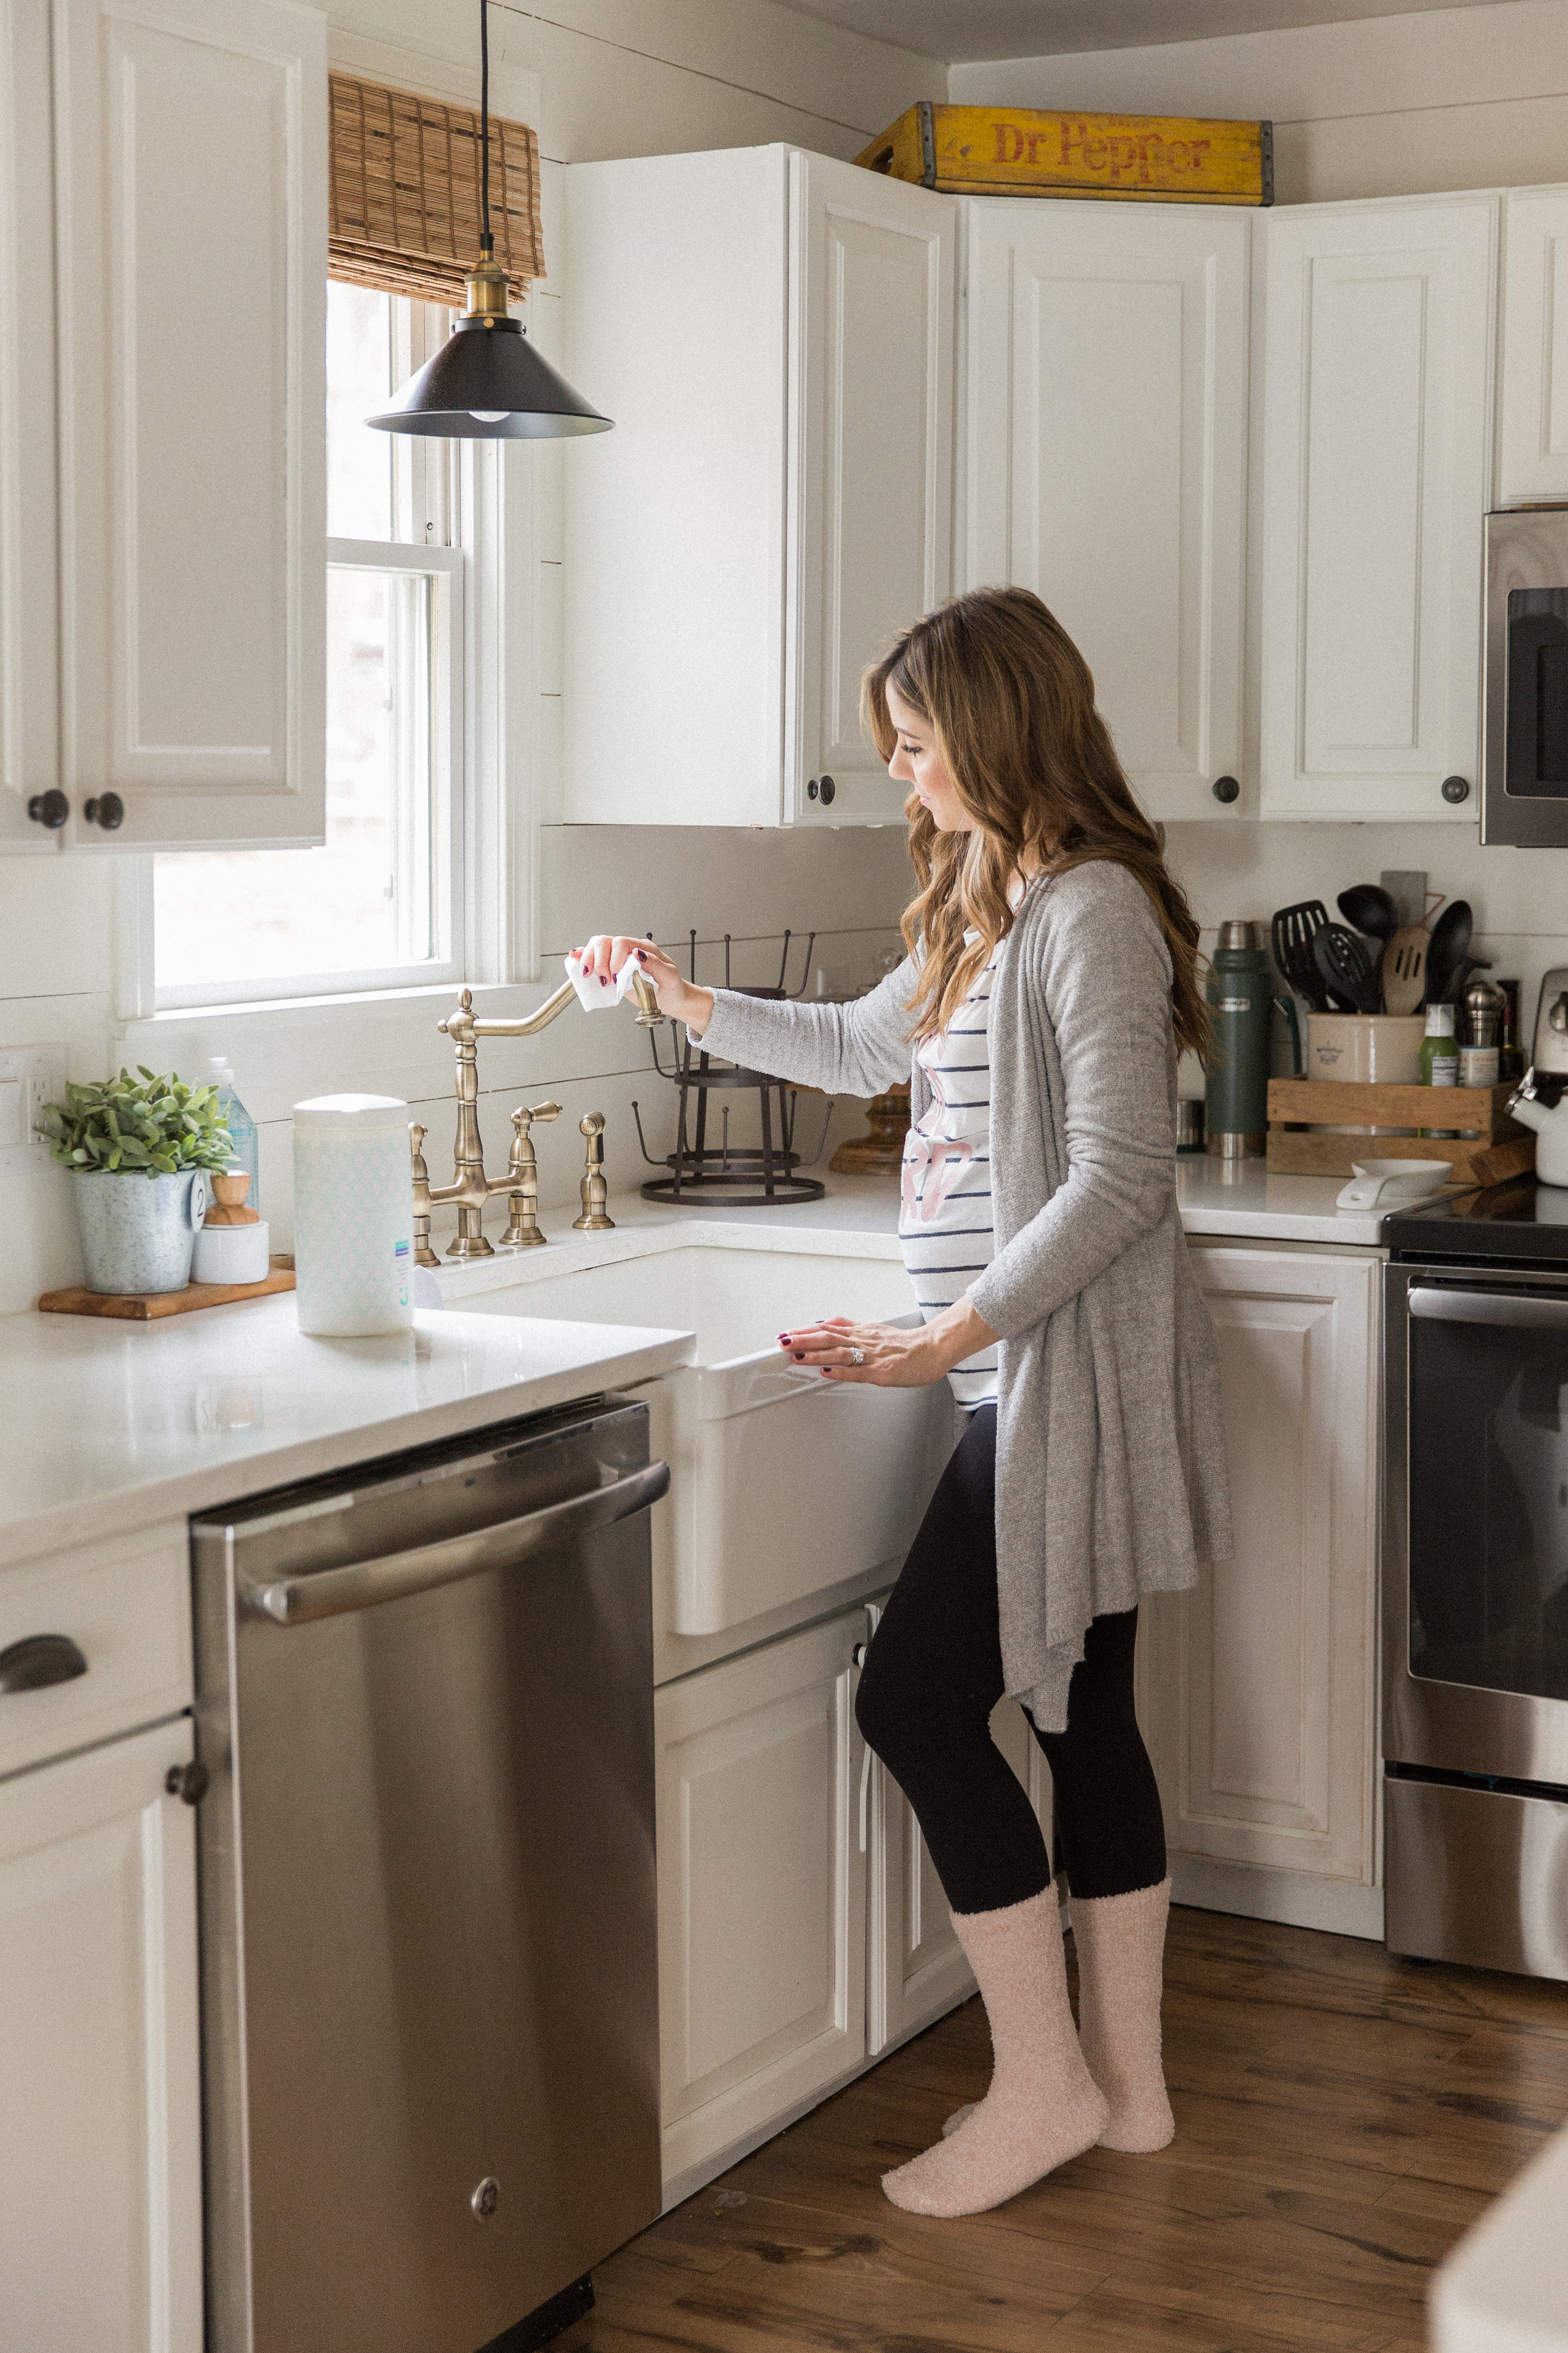 Life and style blogger Lauren McBride shares her Tips for a More Natural Home, including basic steps busy parents can take to make their home more natural.